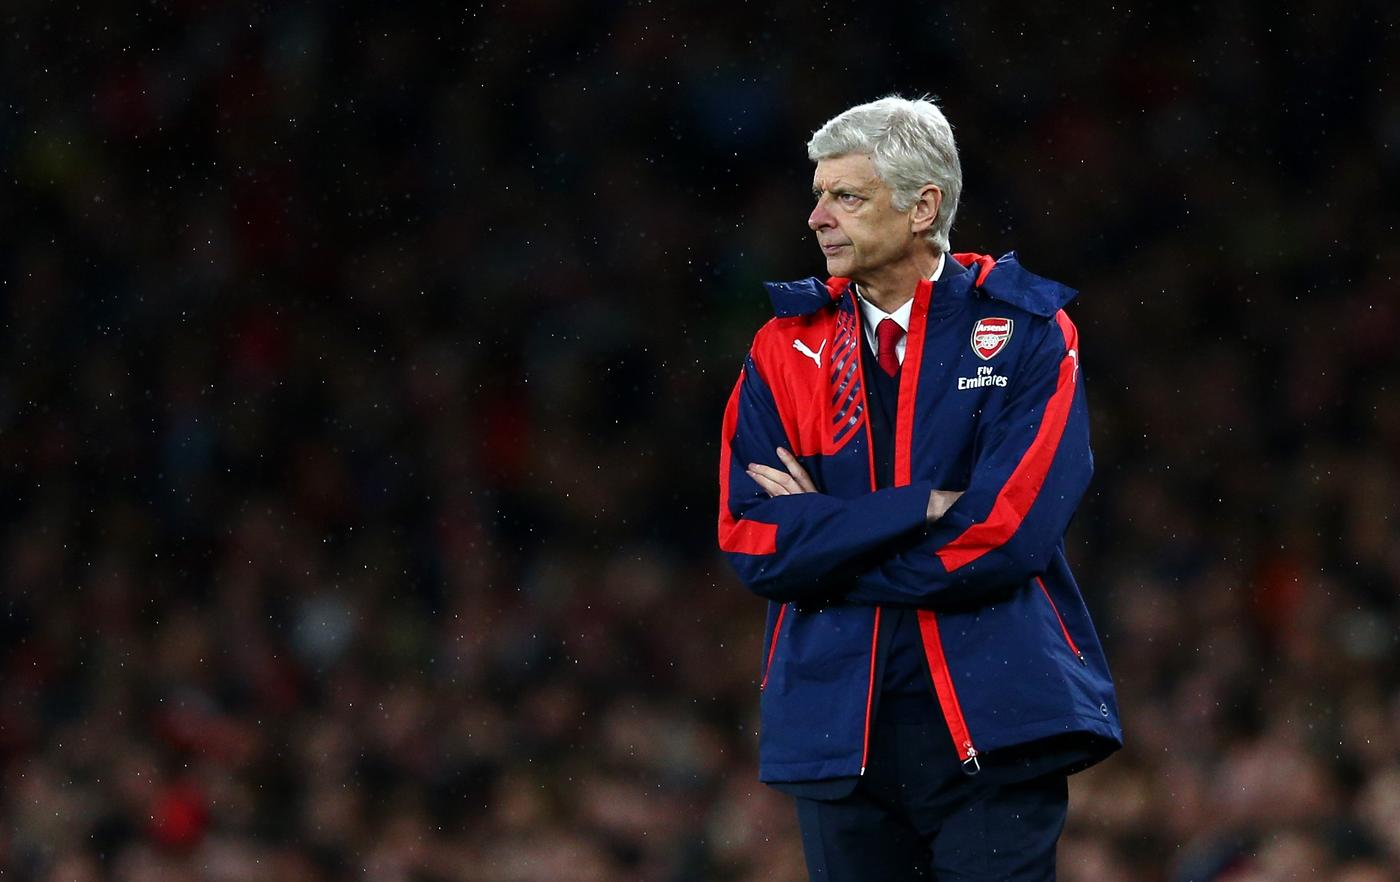 Arsenal boss Arsene Wenger stands by decision not to sign anyone in transfer window